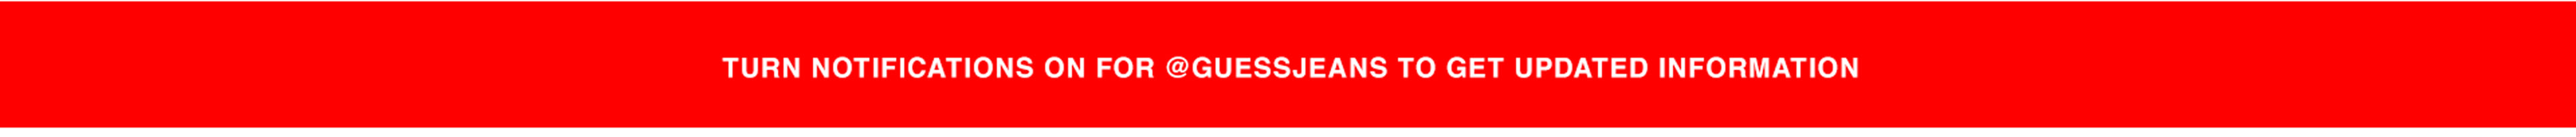 Turn on notifications on @GUESSJEANS to get updated information